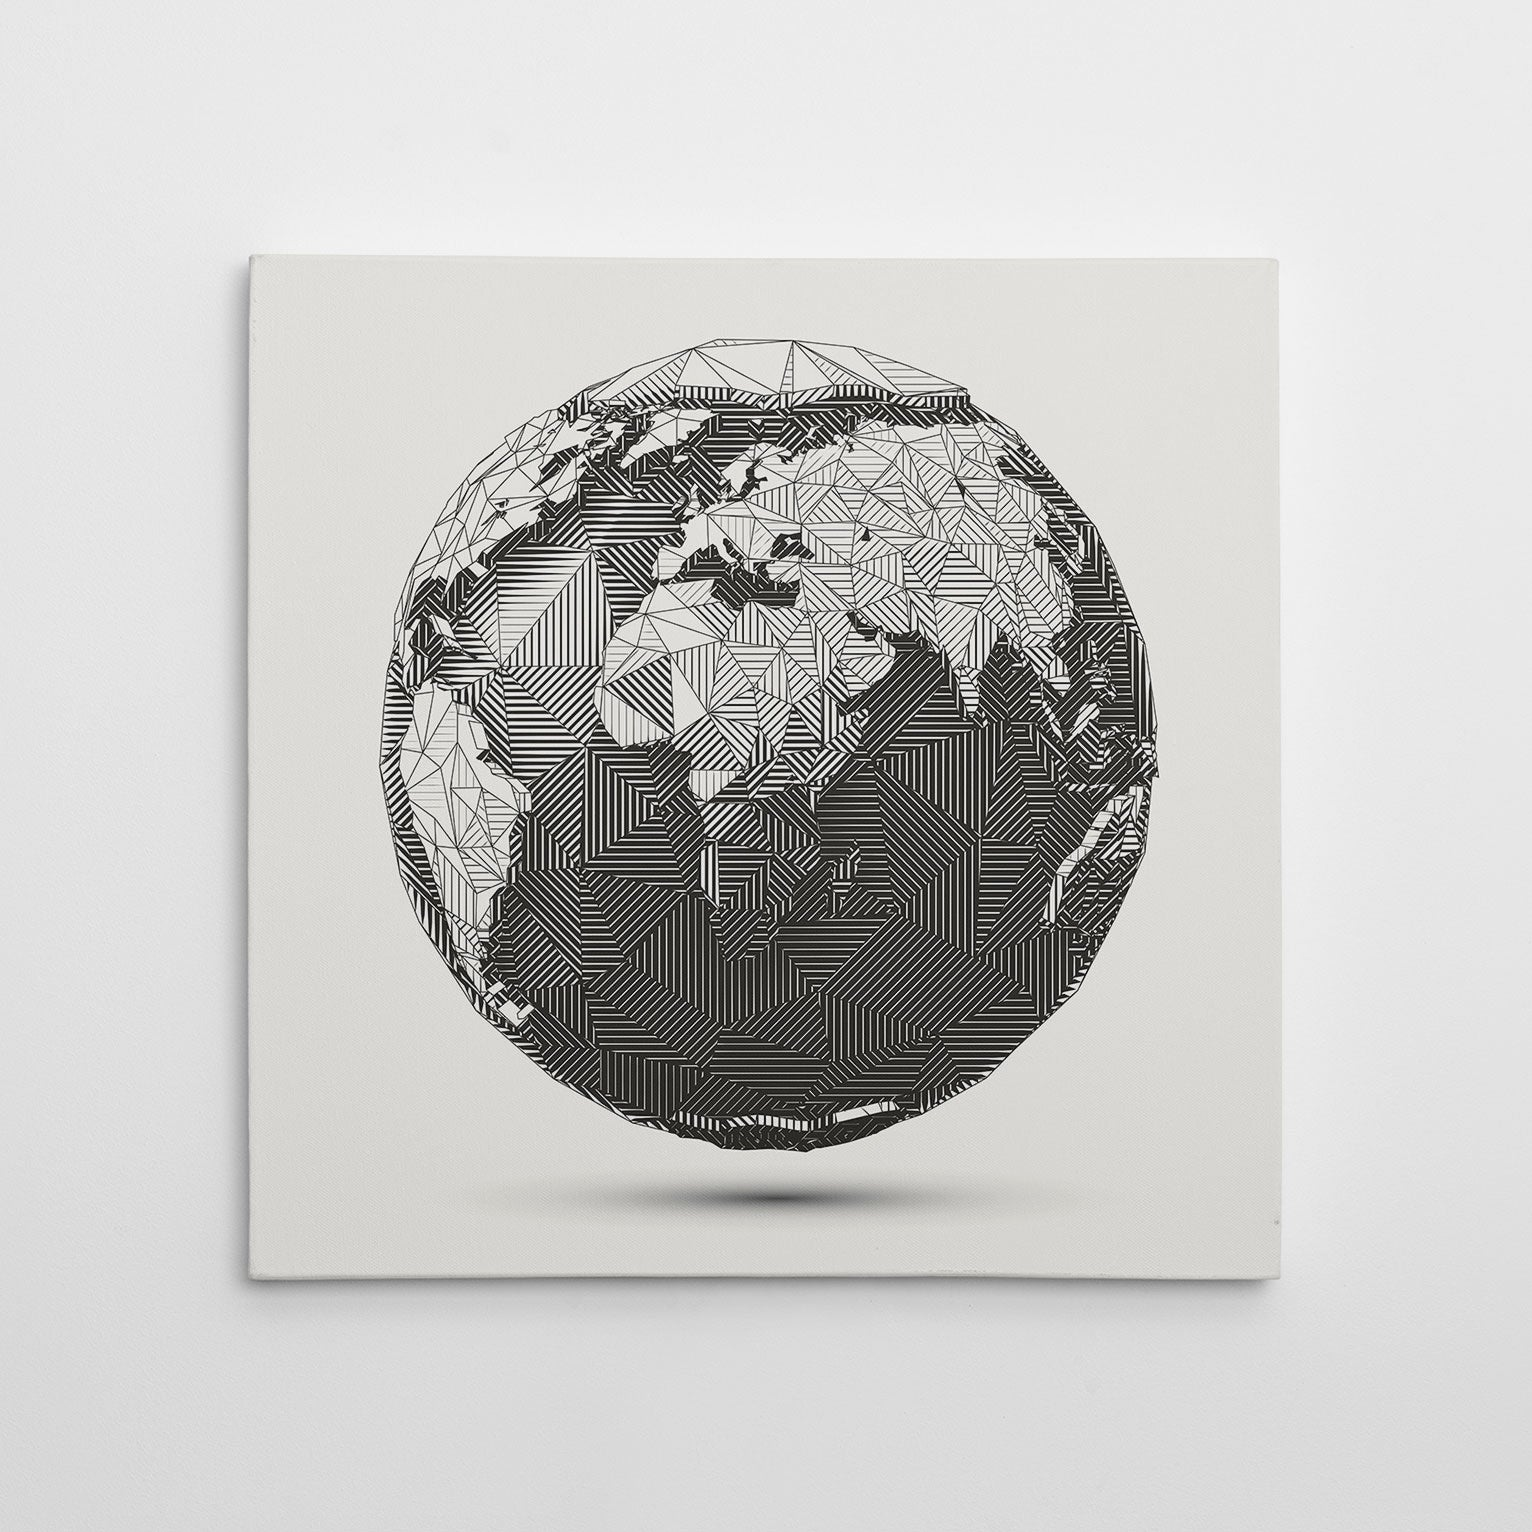 Geometric canvas print with 3D Earth Globe on light grey background.